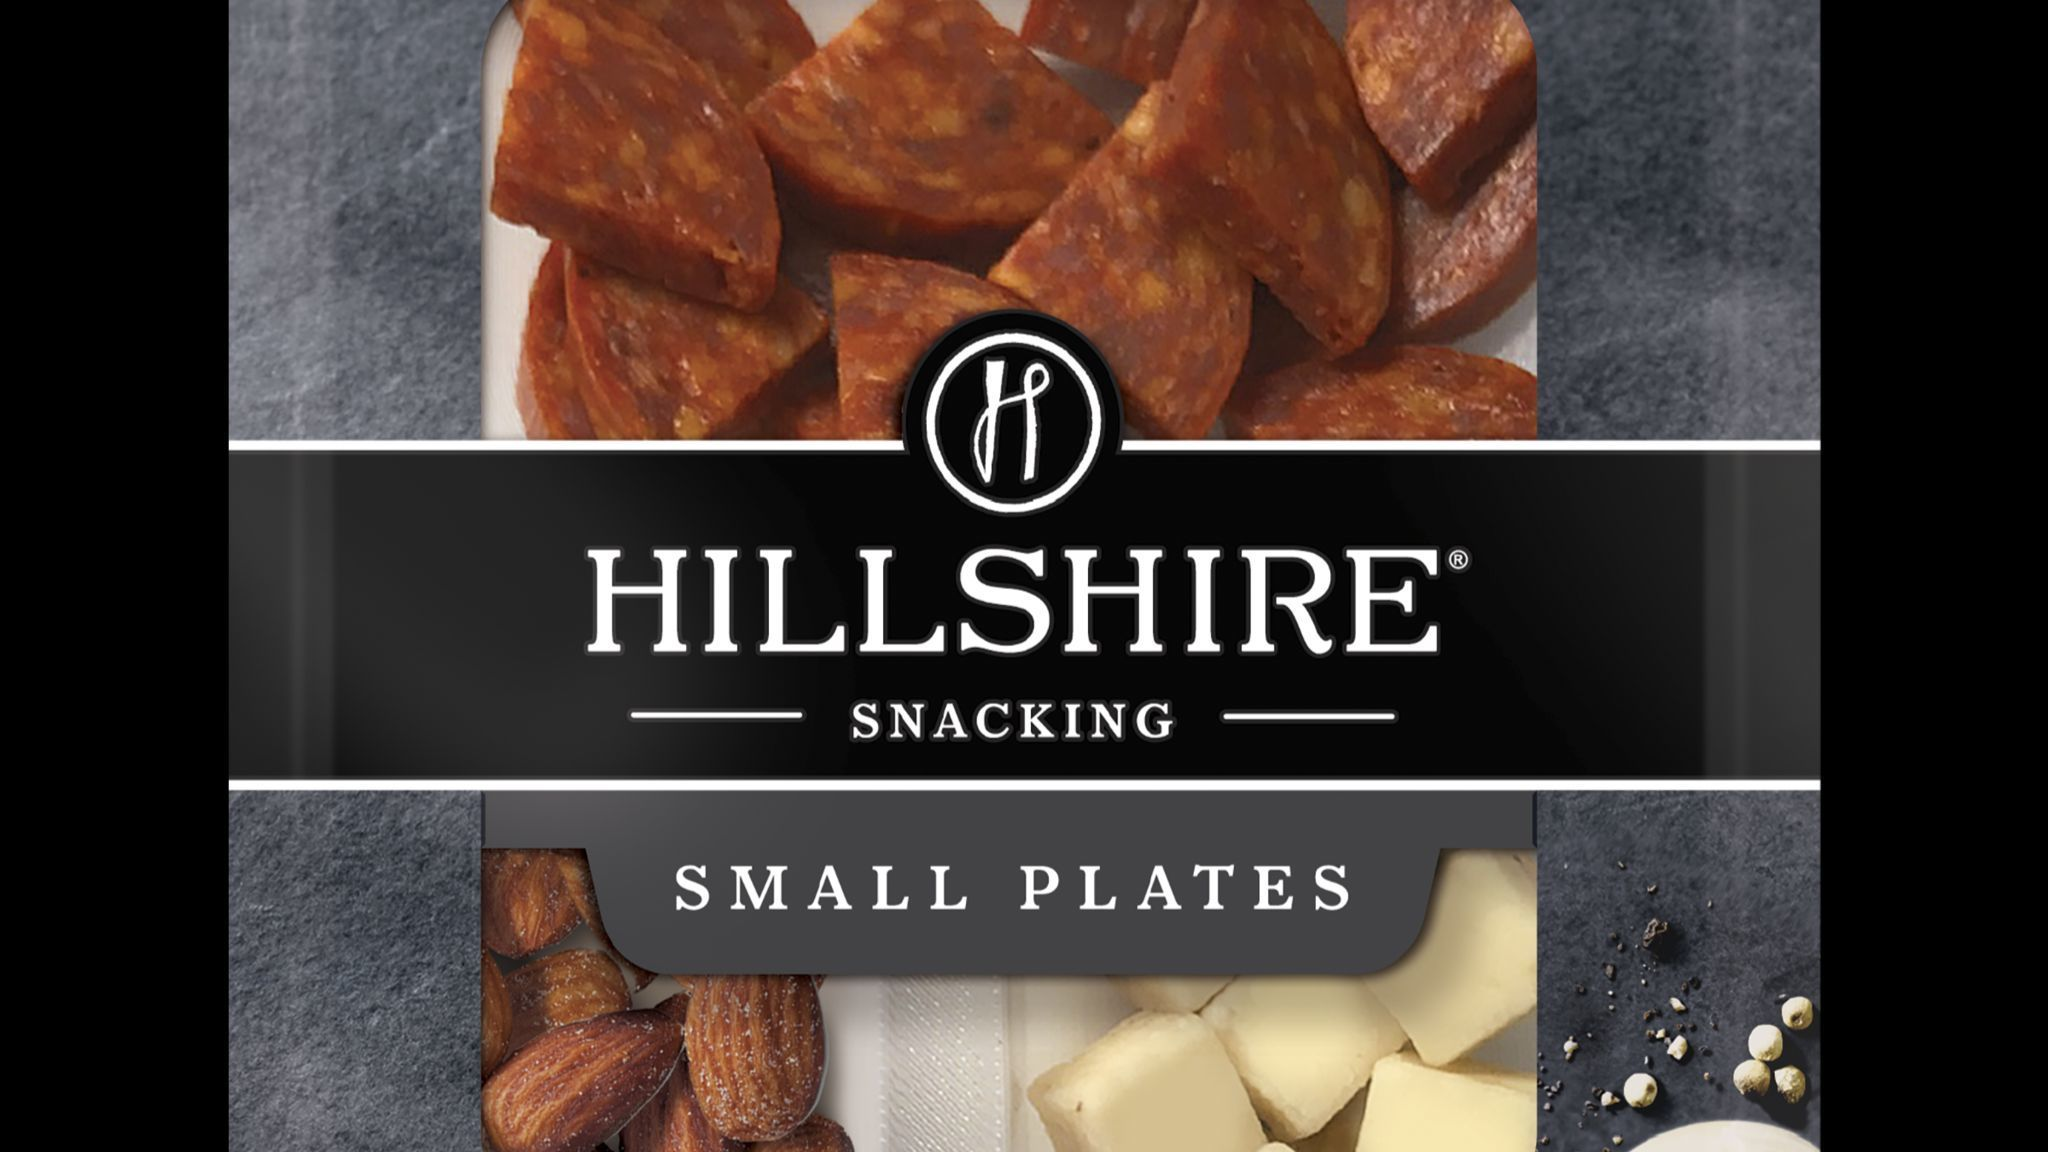 Chef-curated 'small plates' from Hillshire Snacking